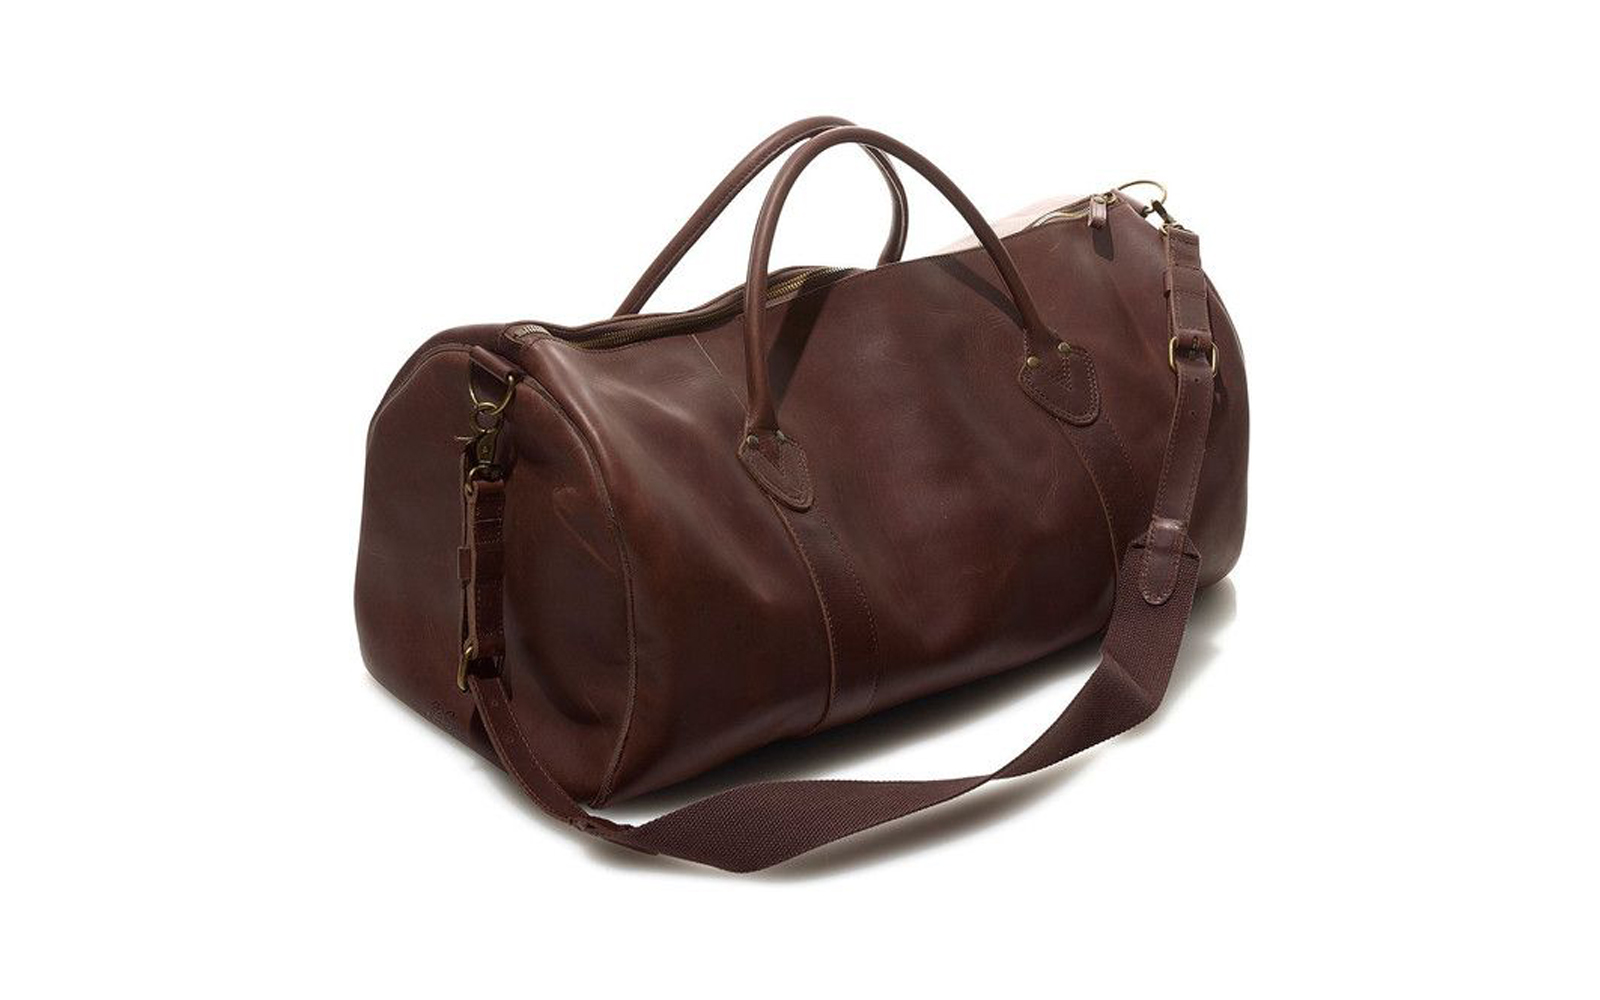 L.L. Bean, Signature Leather Duffle